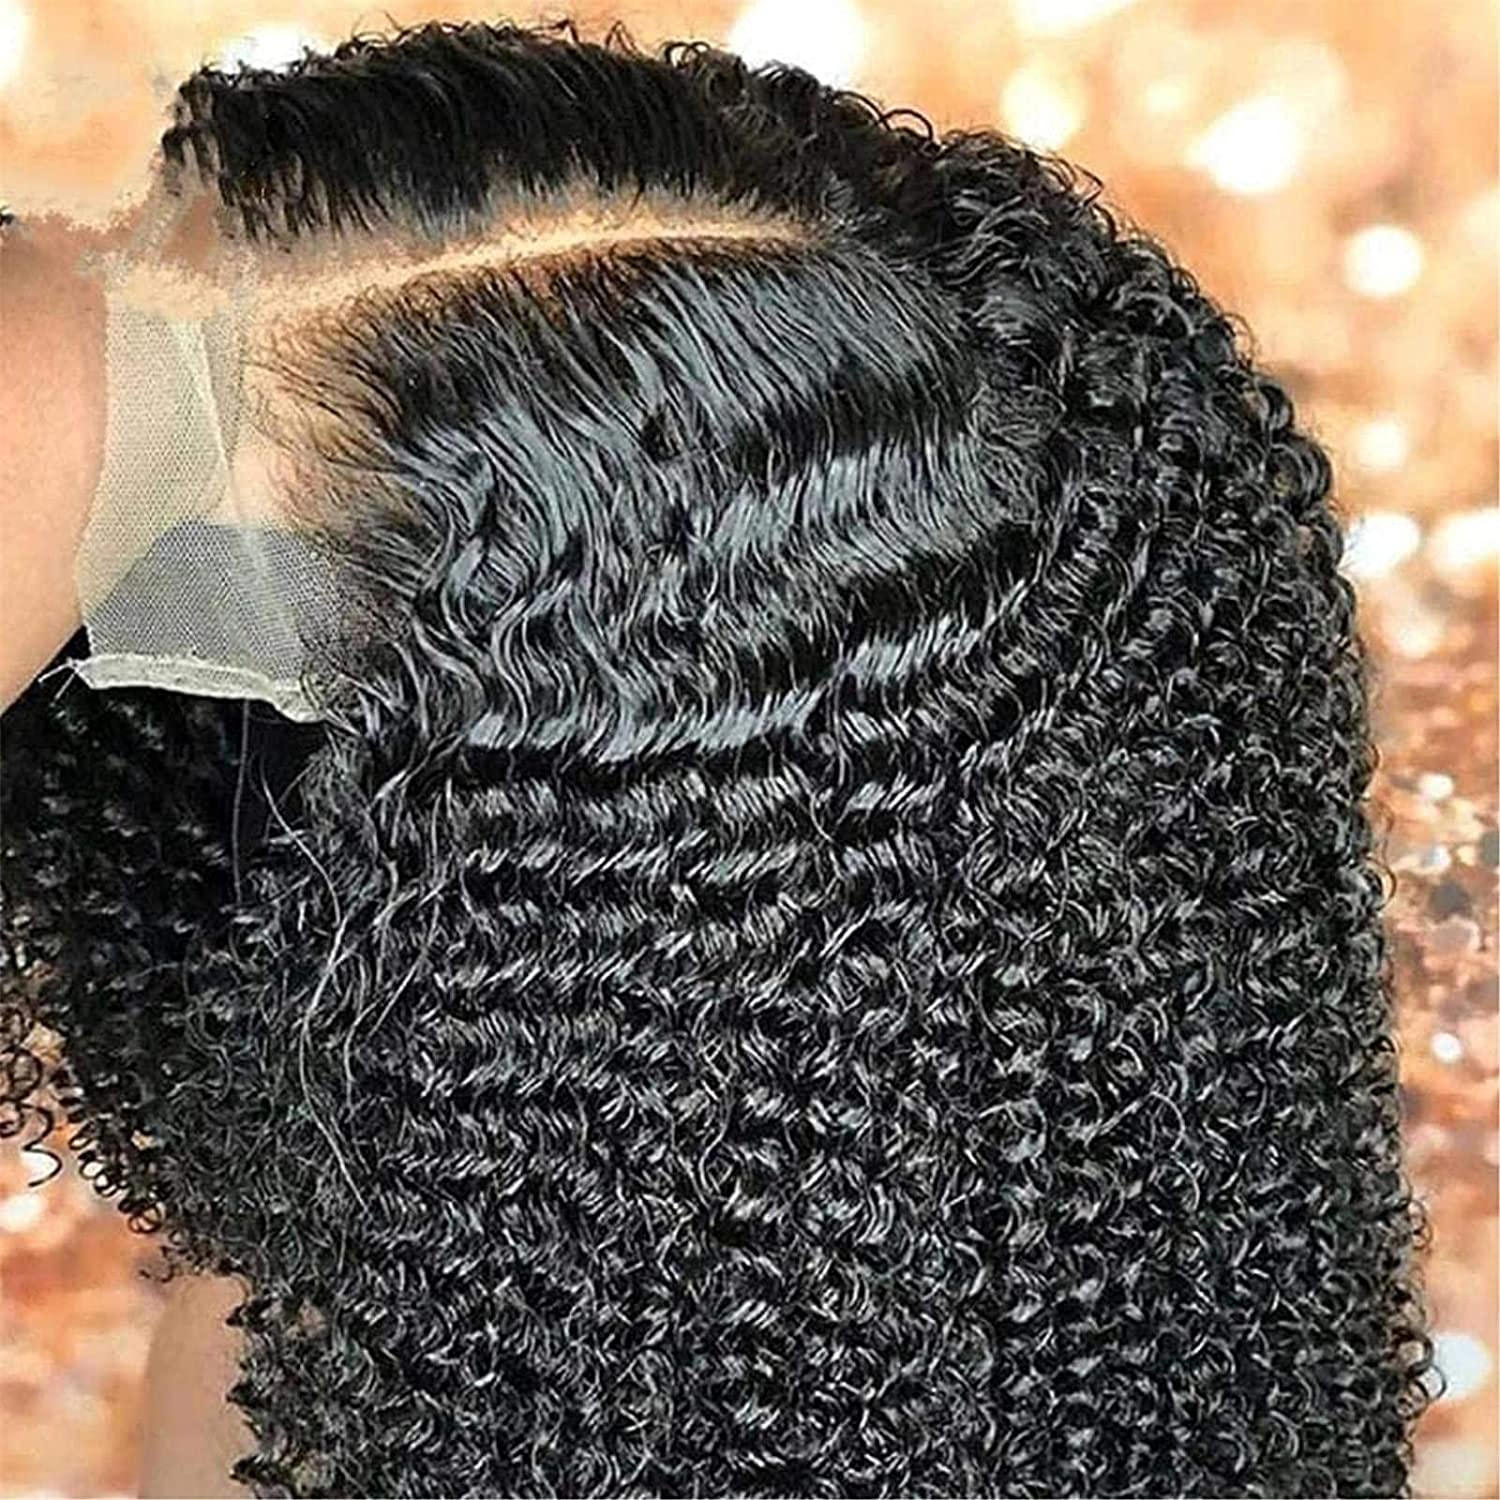 Hair price Styling excellence Wigs Wig Kinky Curly 4 Co 13 Front Lace